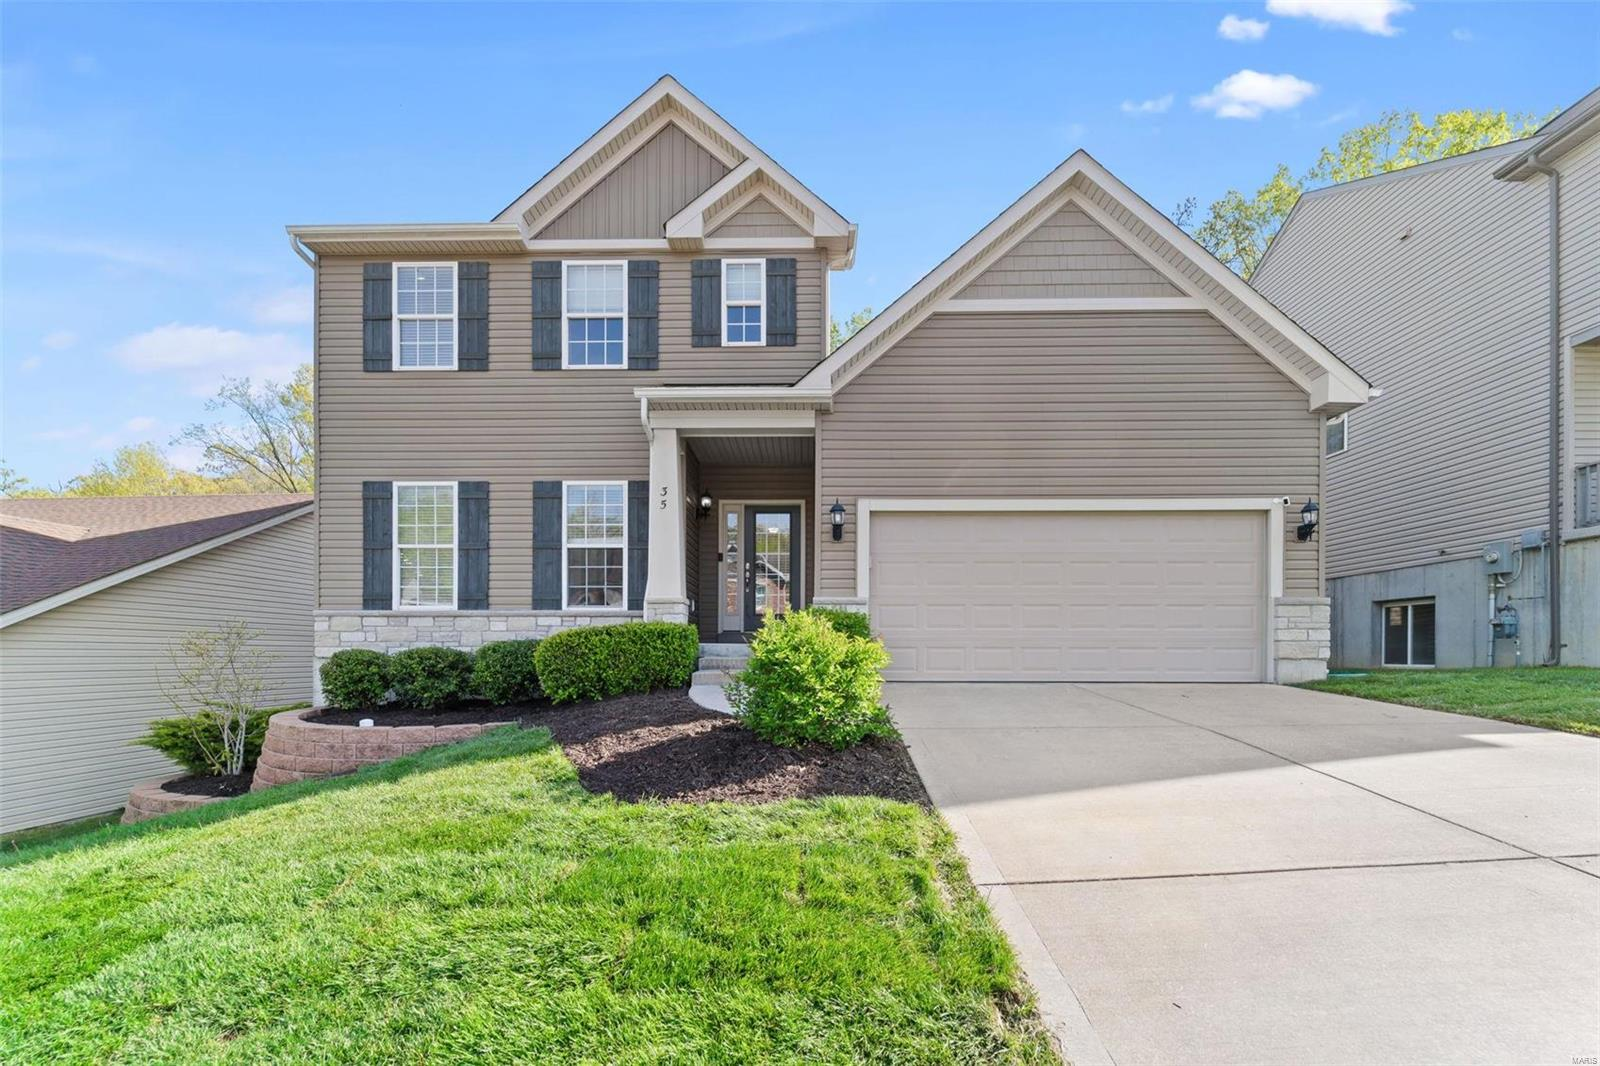 35 San Marino Pkwy Property Photo - Fenton, MO real estate listing